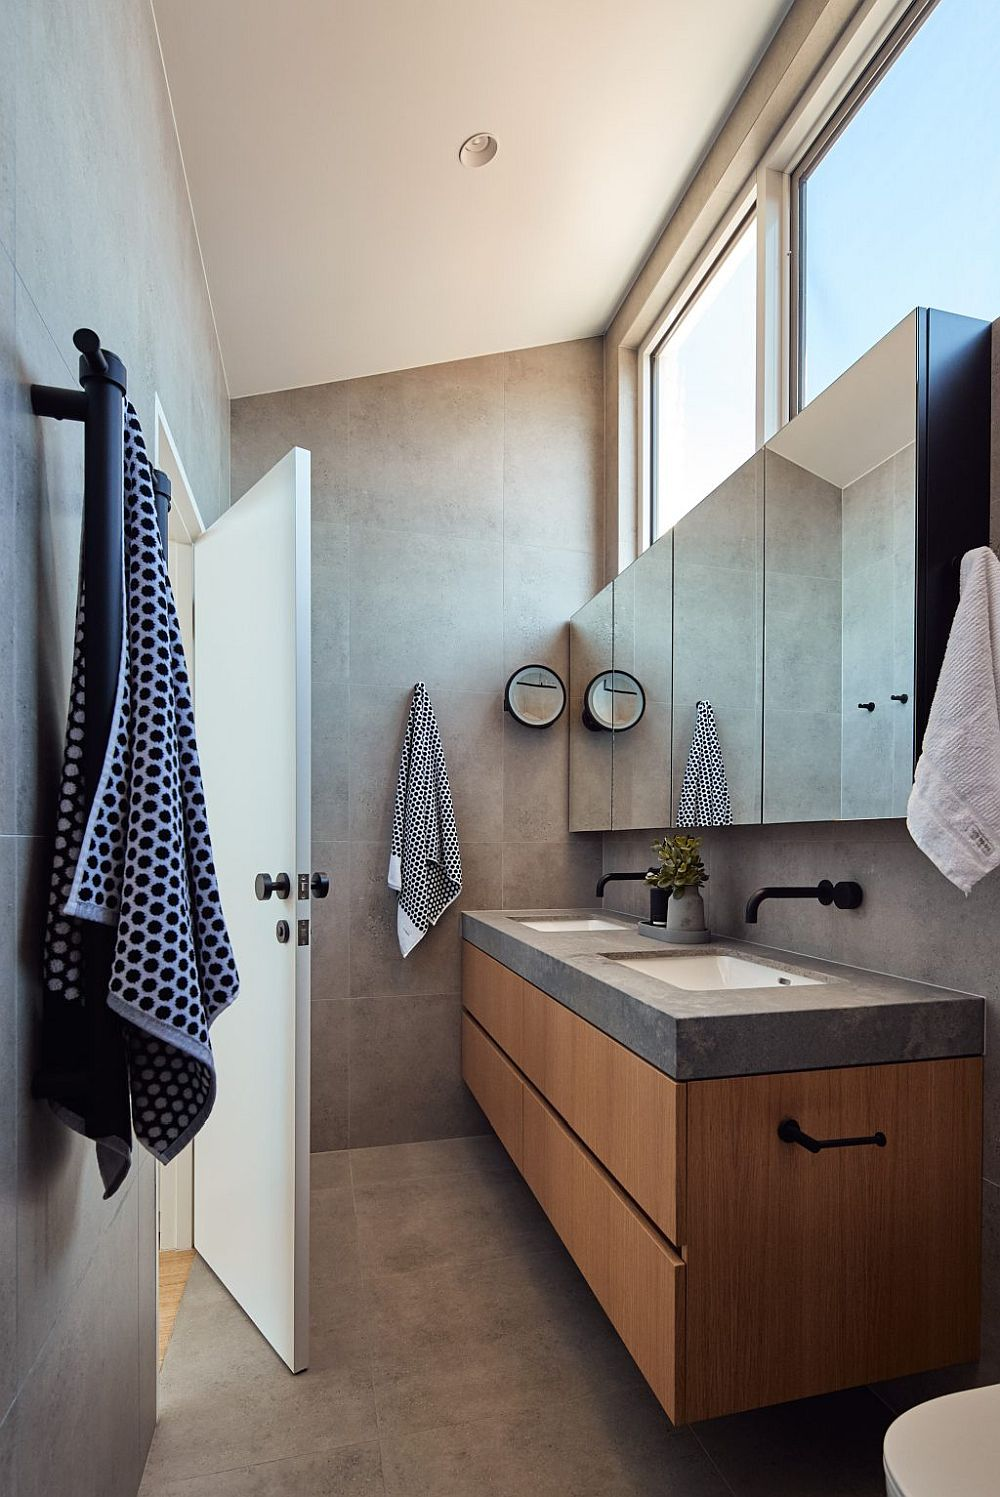 Bathroom of the revamped Cascade House in Australia